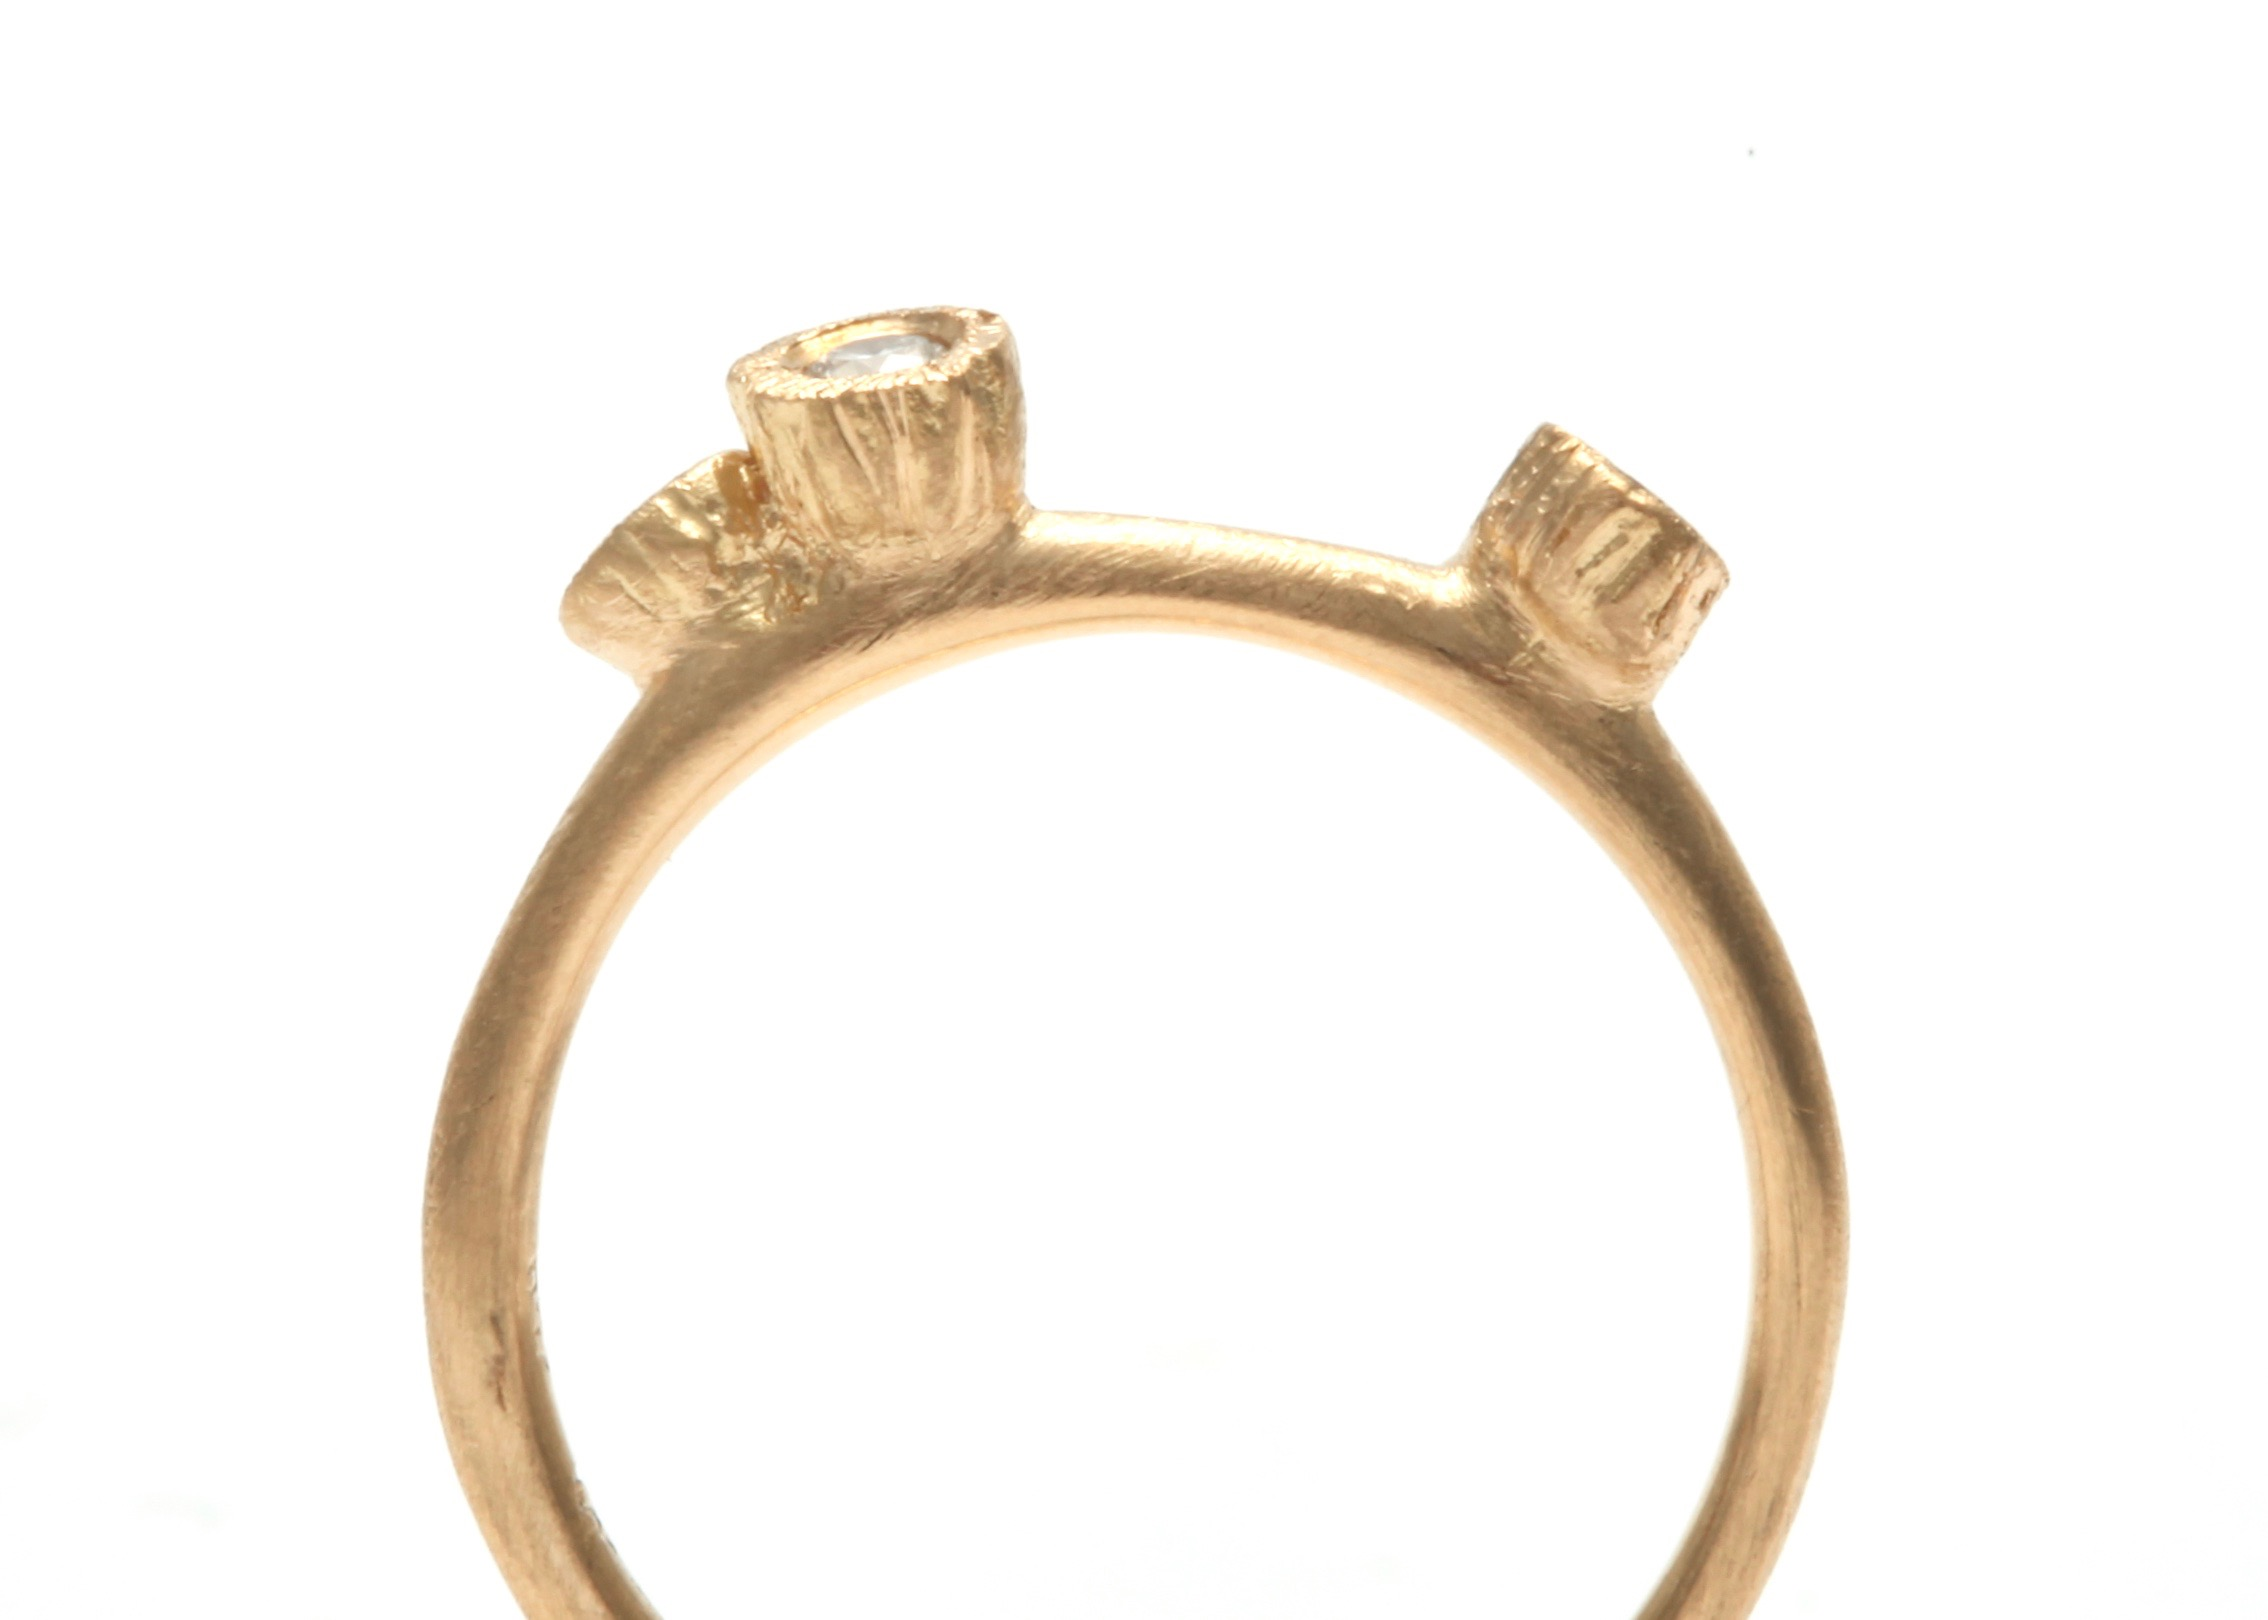 Nook Ring - available through Real Job Studios